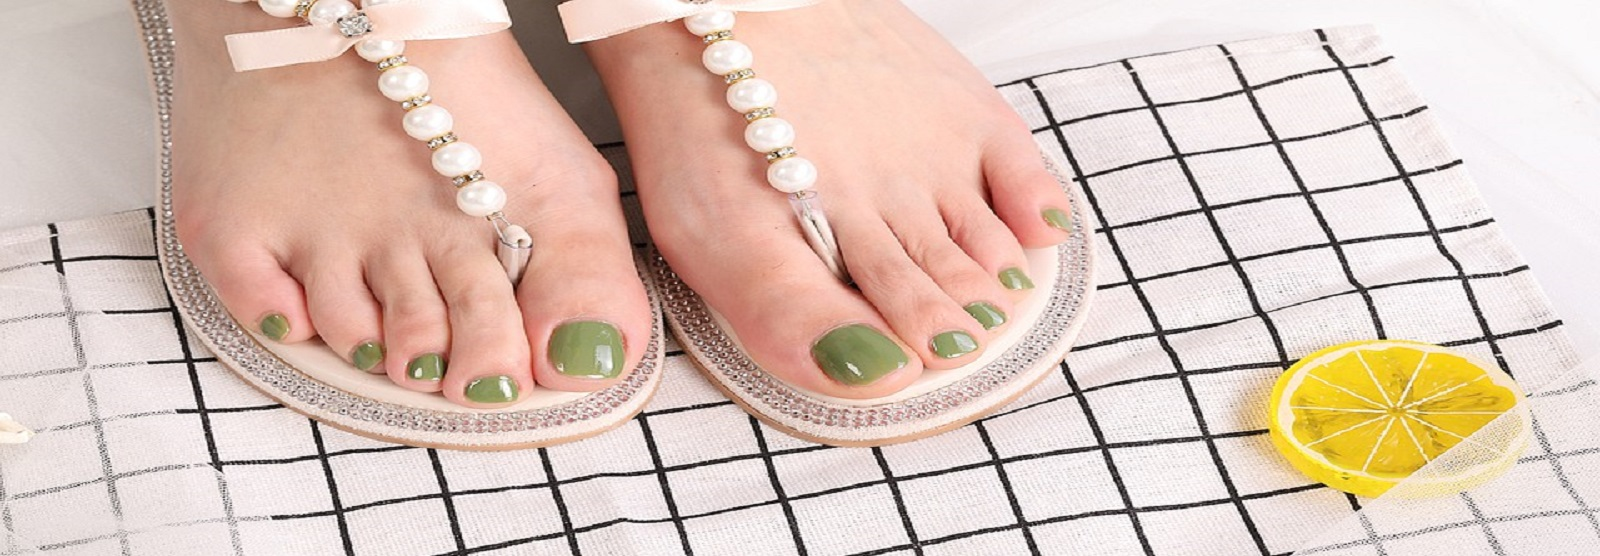 Let's Switch to Waterless Pedicure from Water Pedicure